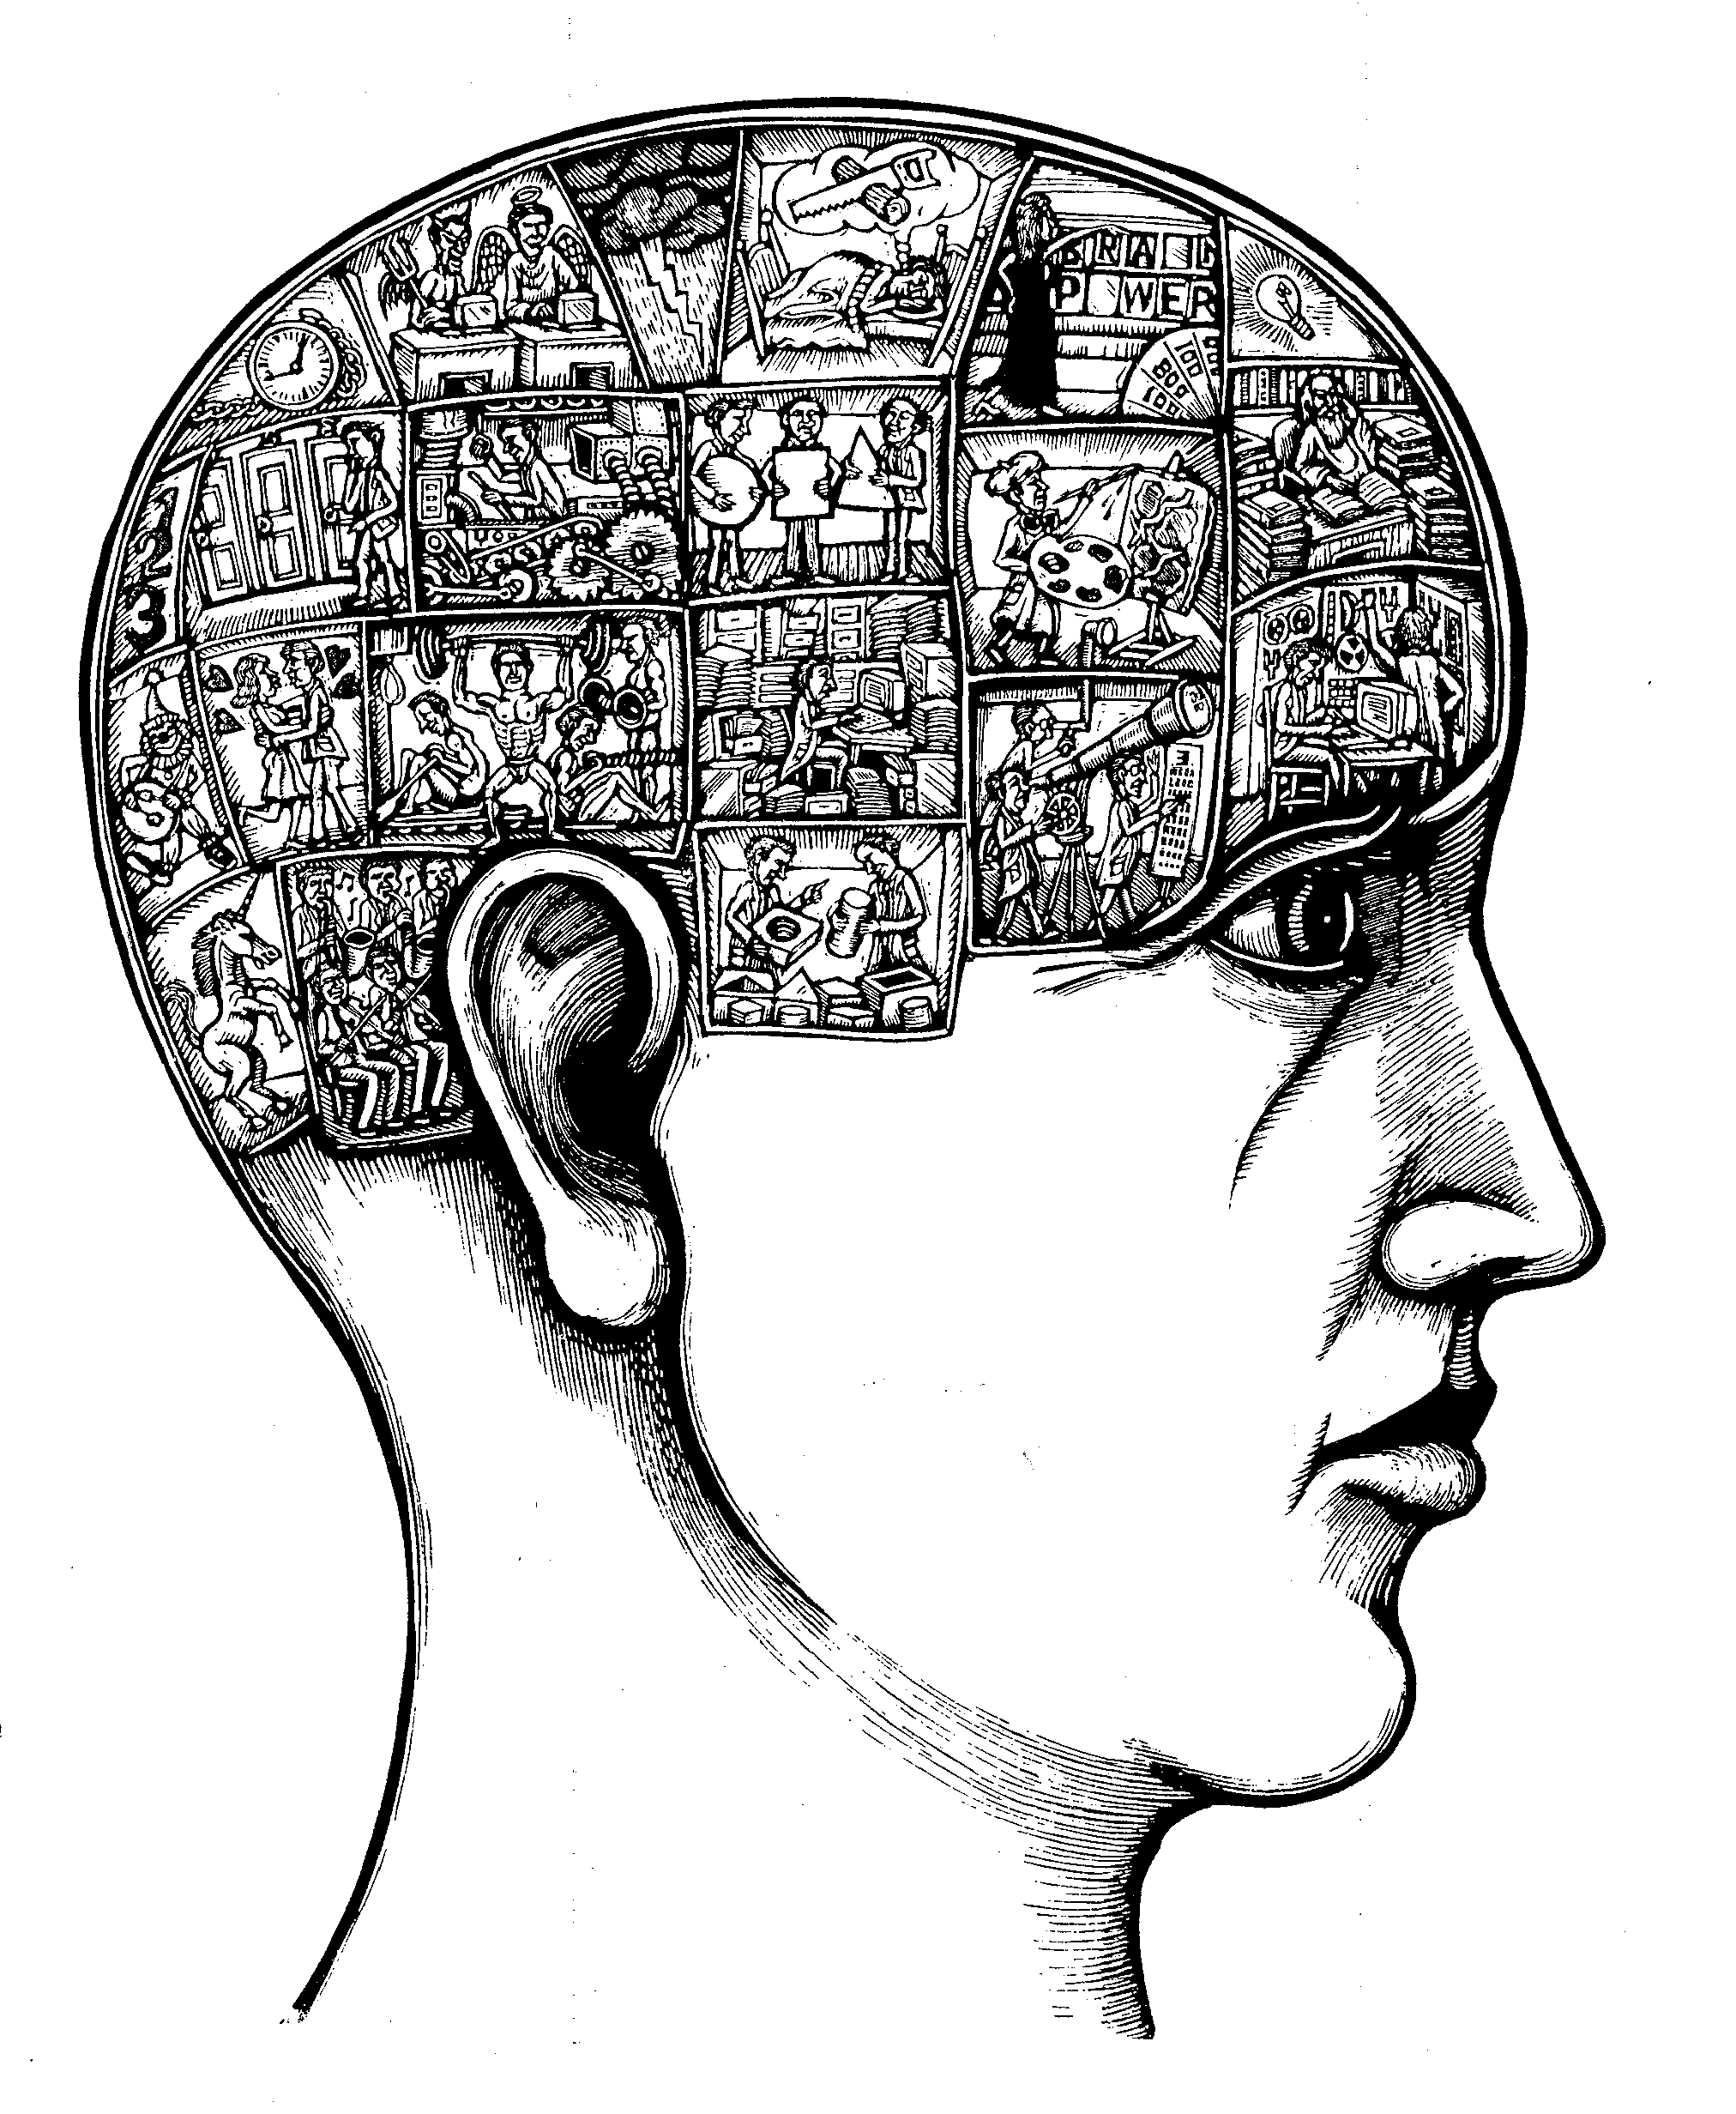 an introduction to phrenology Our goal in this chapter is to provide an introduction to the growing field of sense, modern neuroimaging is similar to the 18th century practice of phrenology introduction to functional neuroimaging.